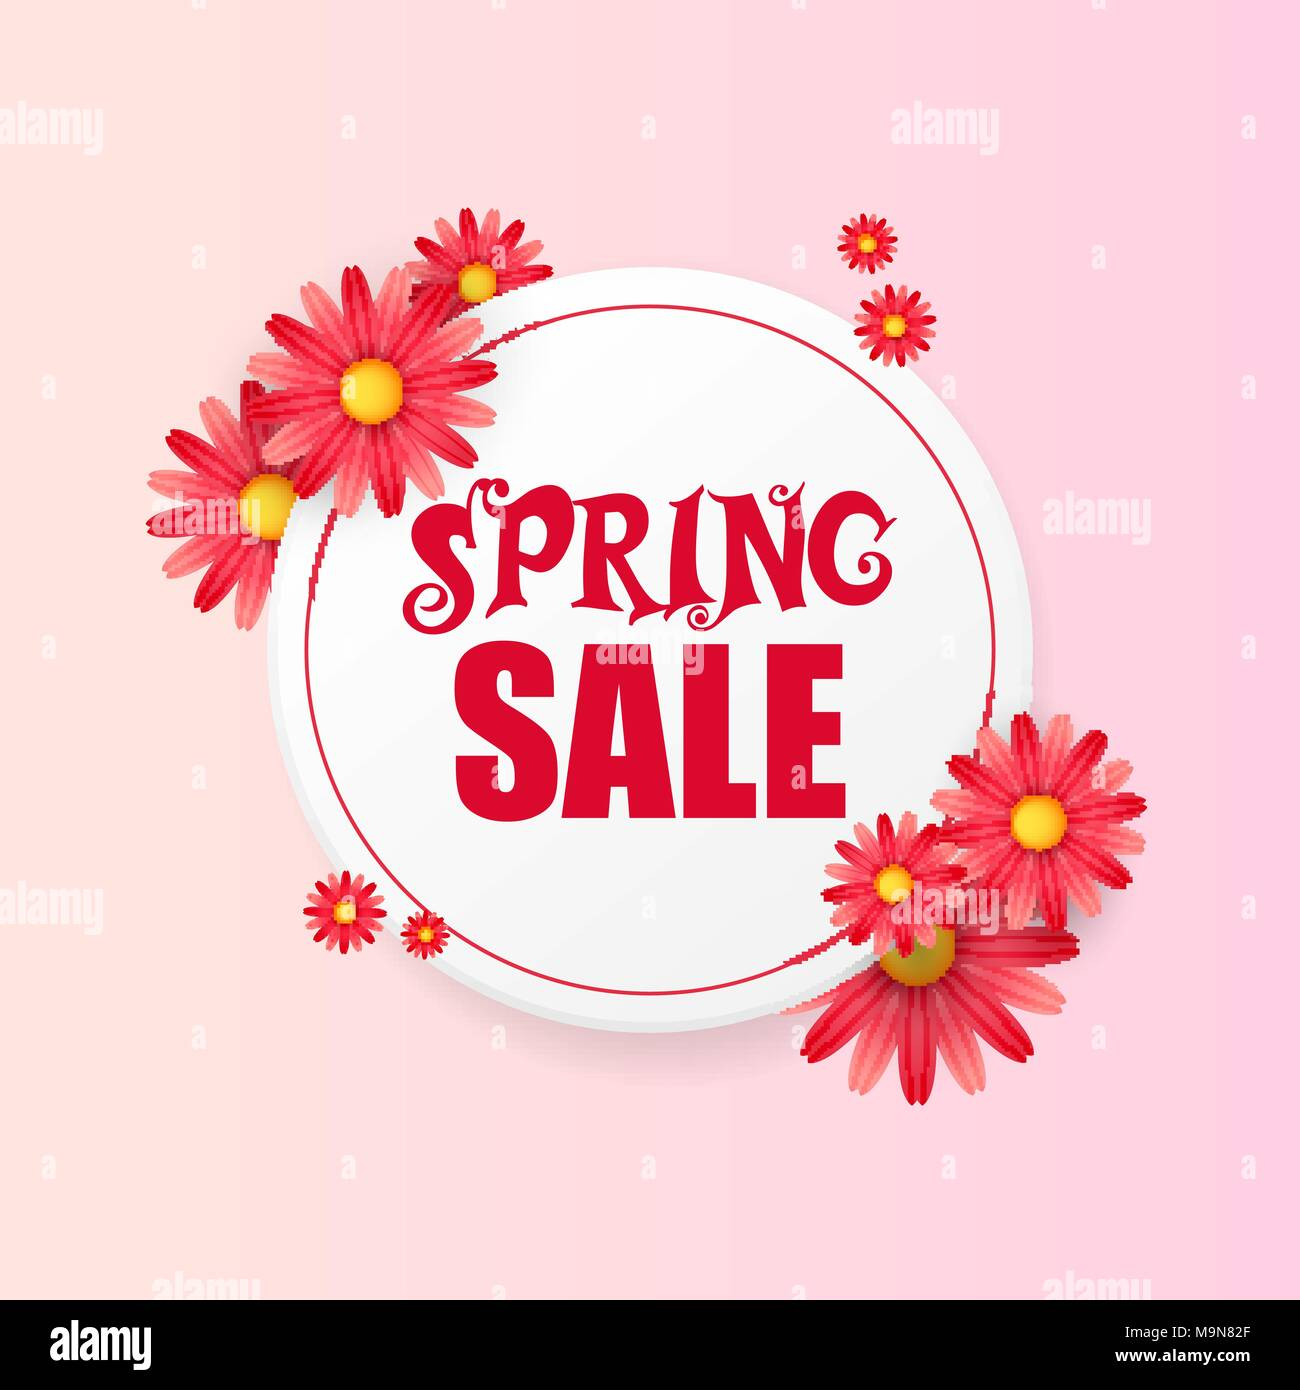 Banner Design Template With Floral Decoration For Spring Sale Round